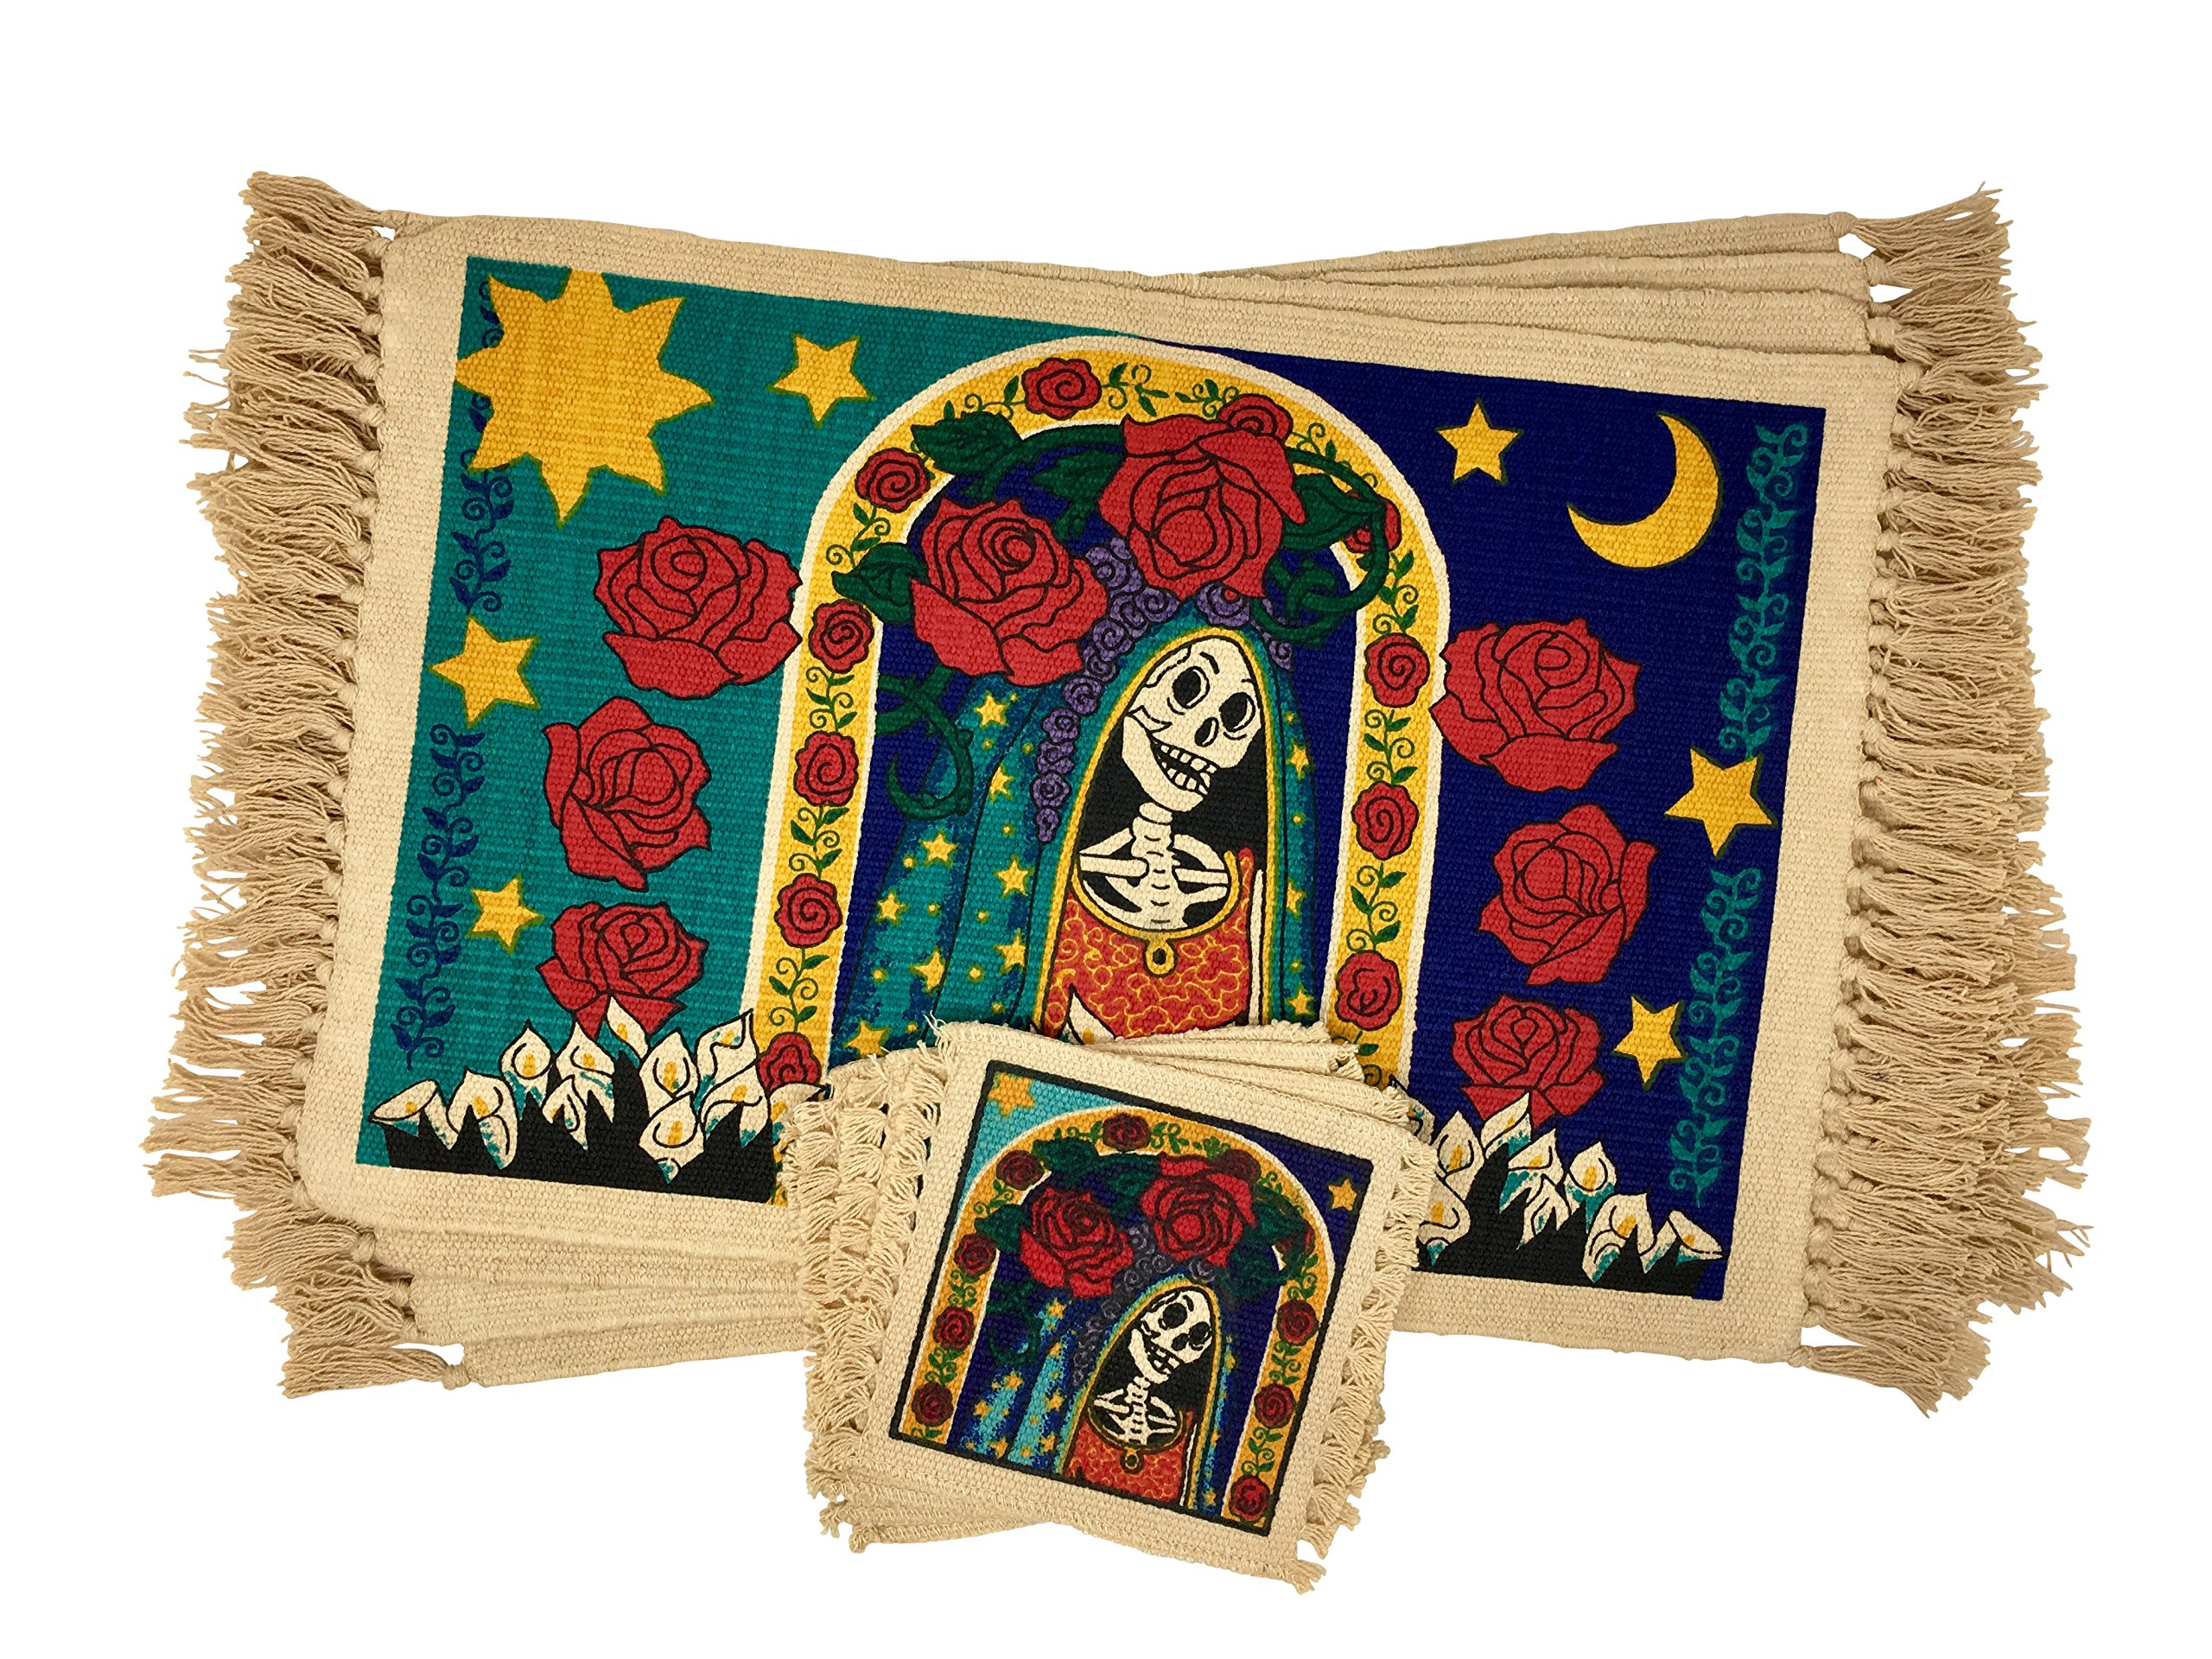 SpiritFest Sugar Skull Placemats & Coasters: Set of 8 Day of the Dead Kitchen & Dining Table Decor (Santa Muerte)